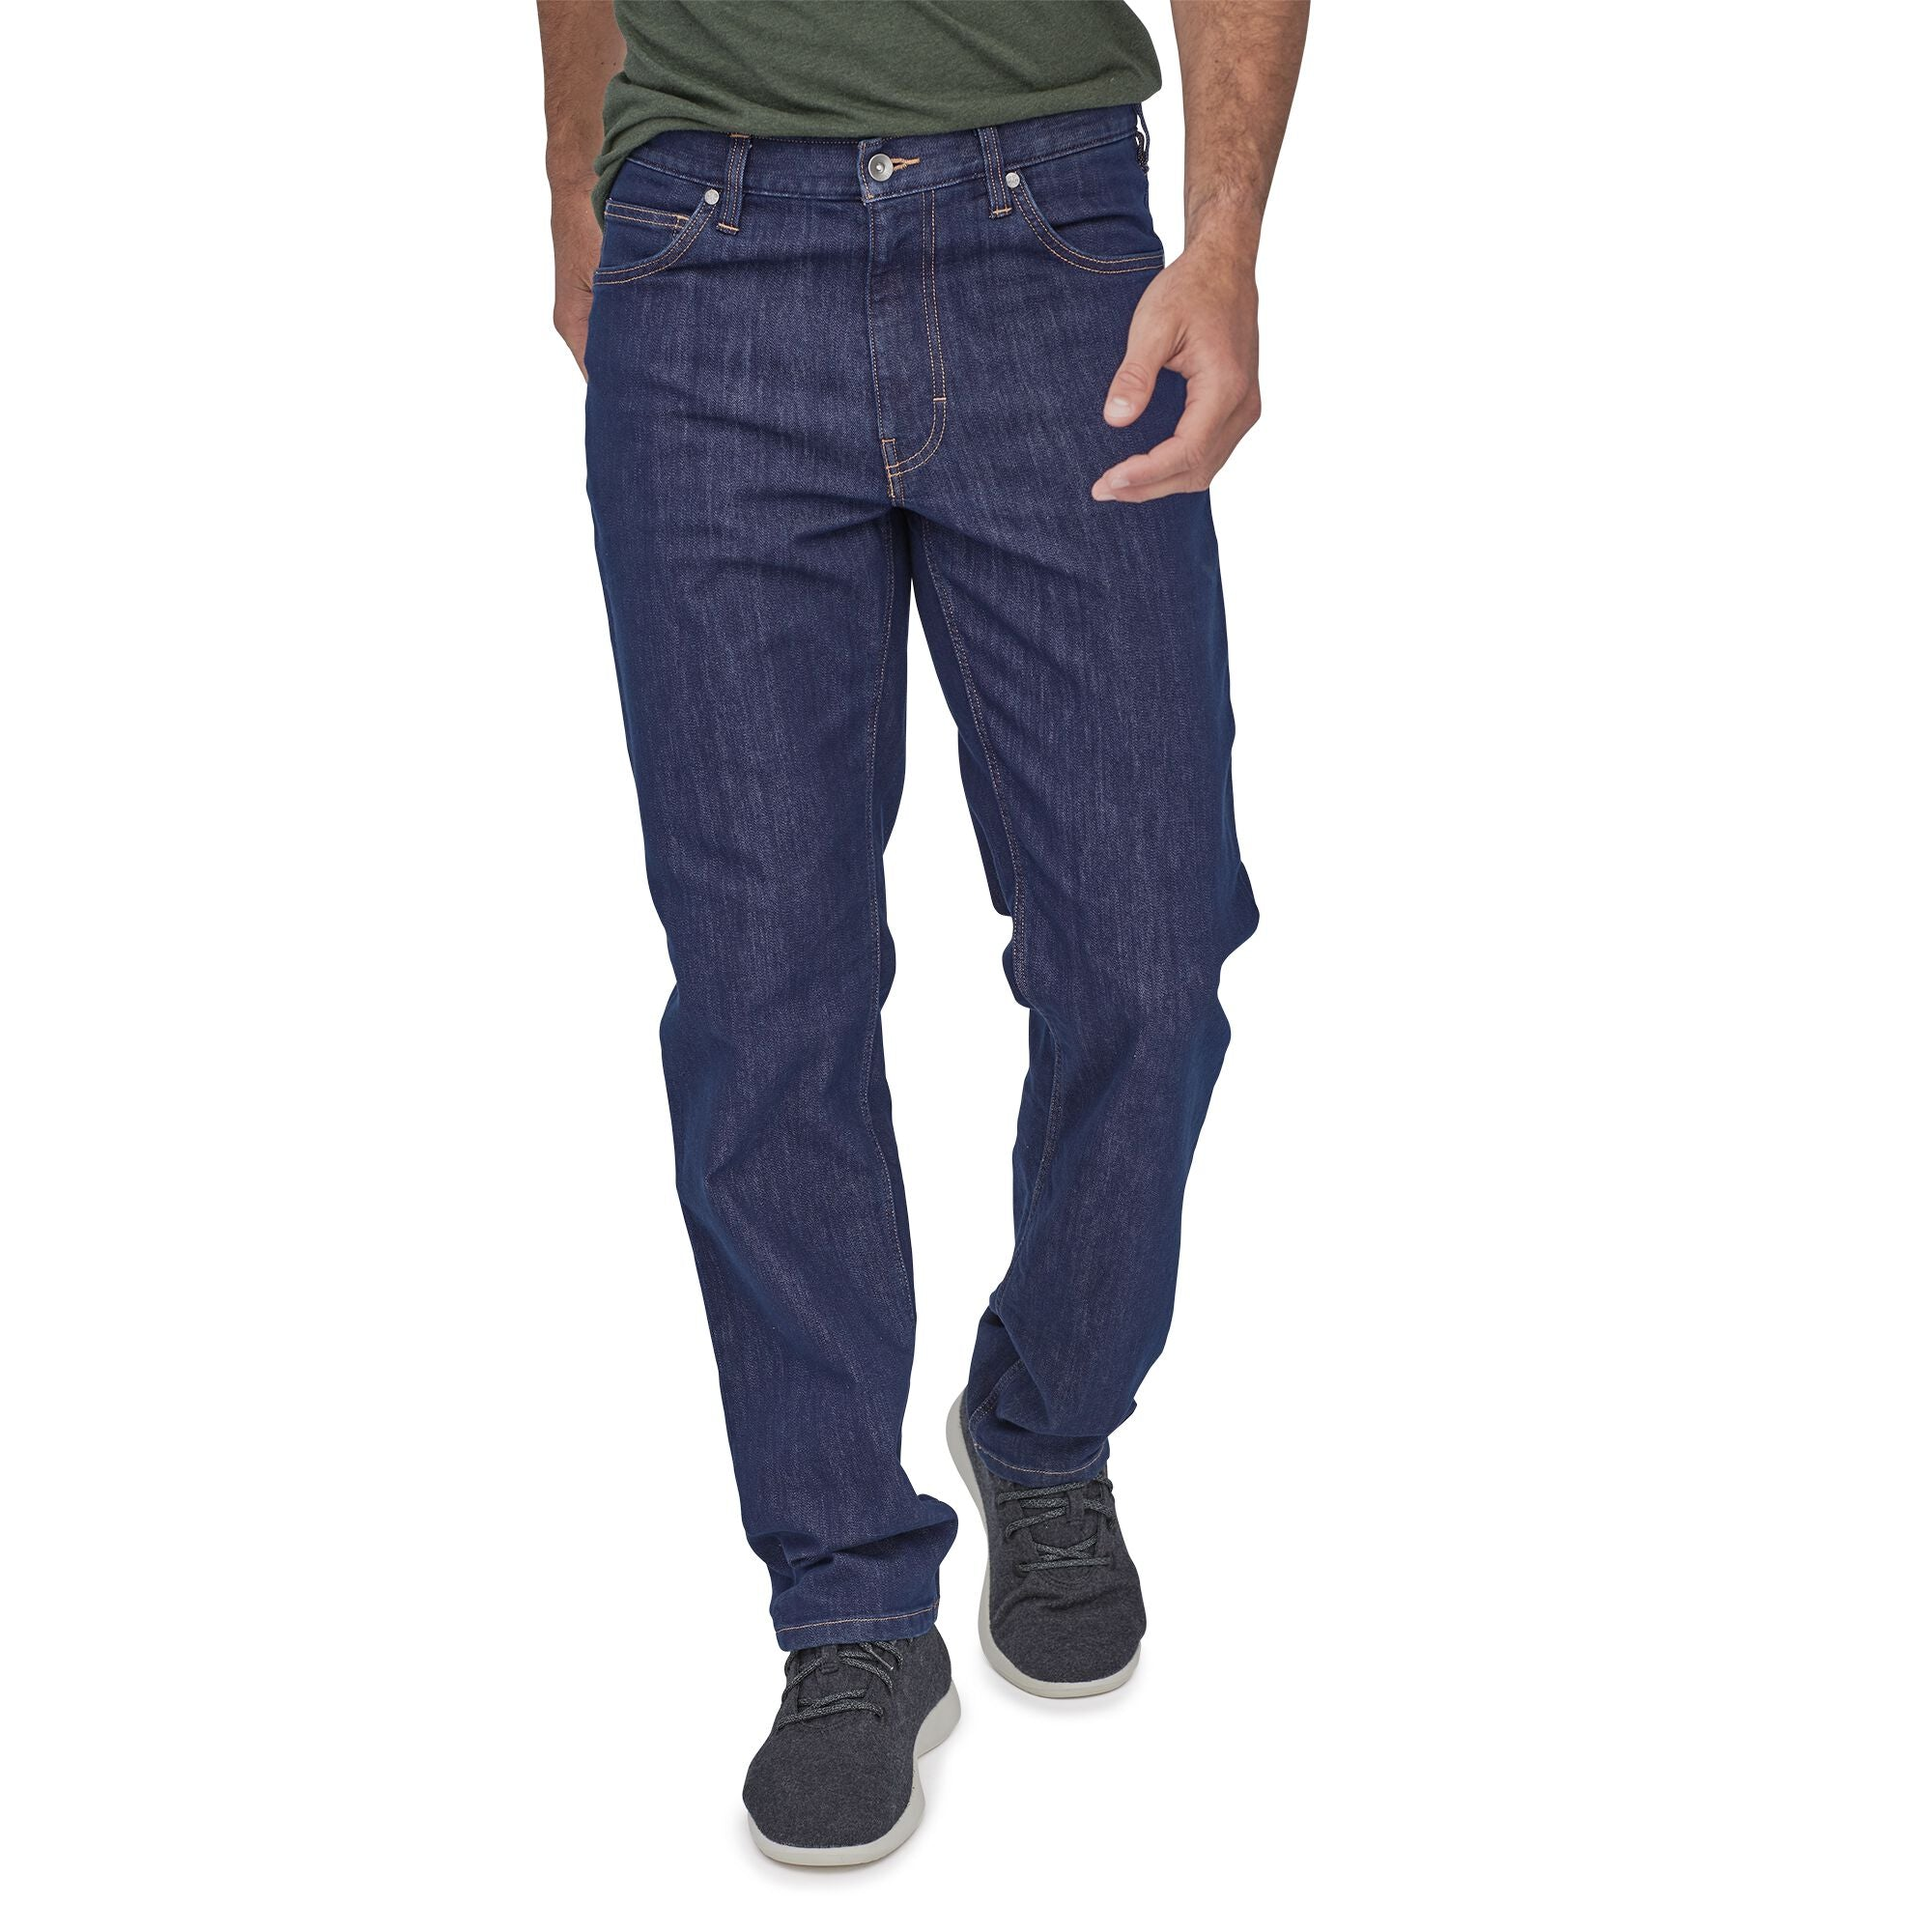 Jeans Hombre Performance Regular Fit- Regular Azul Patagonia